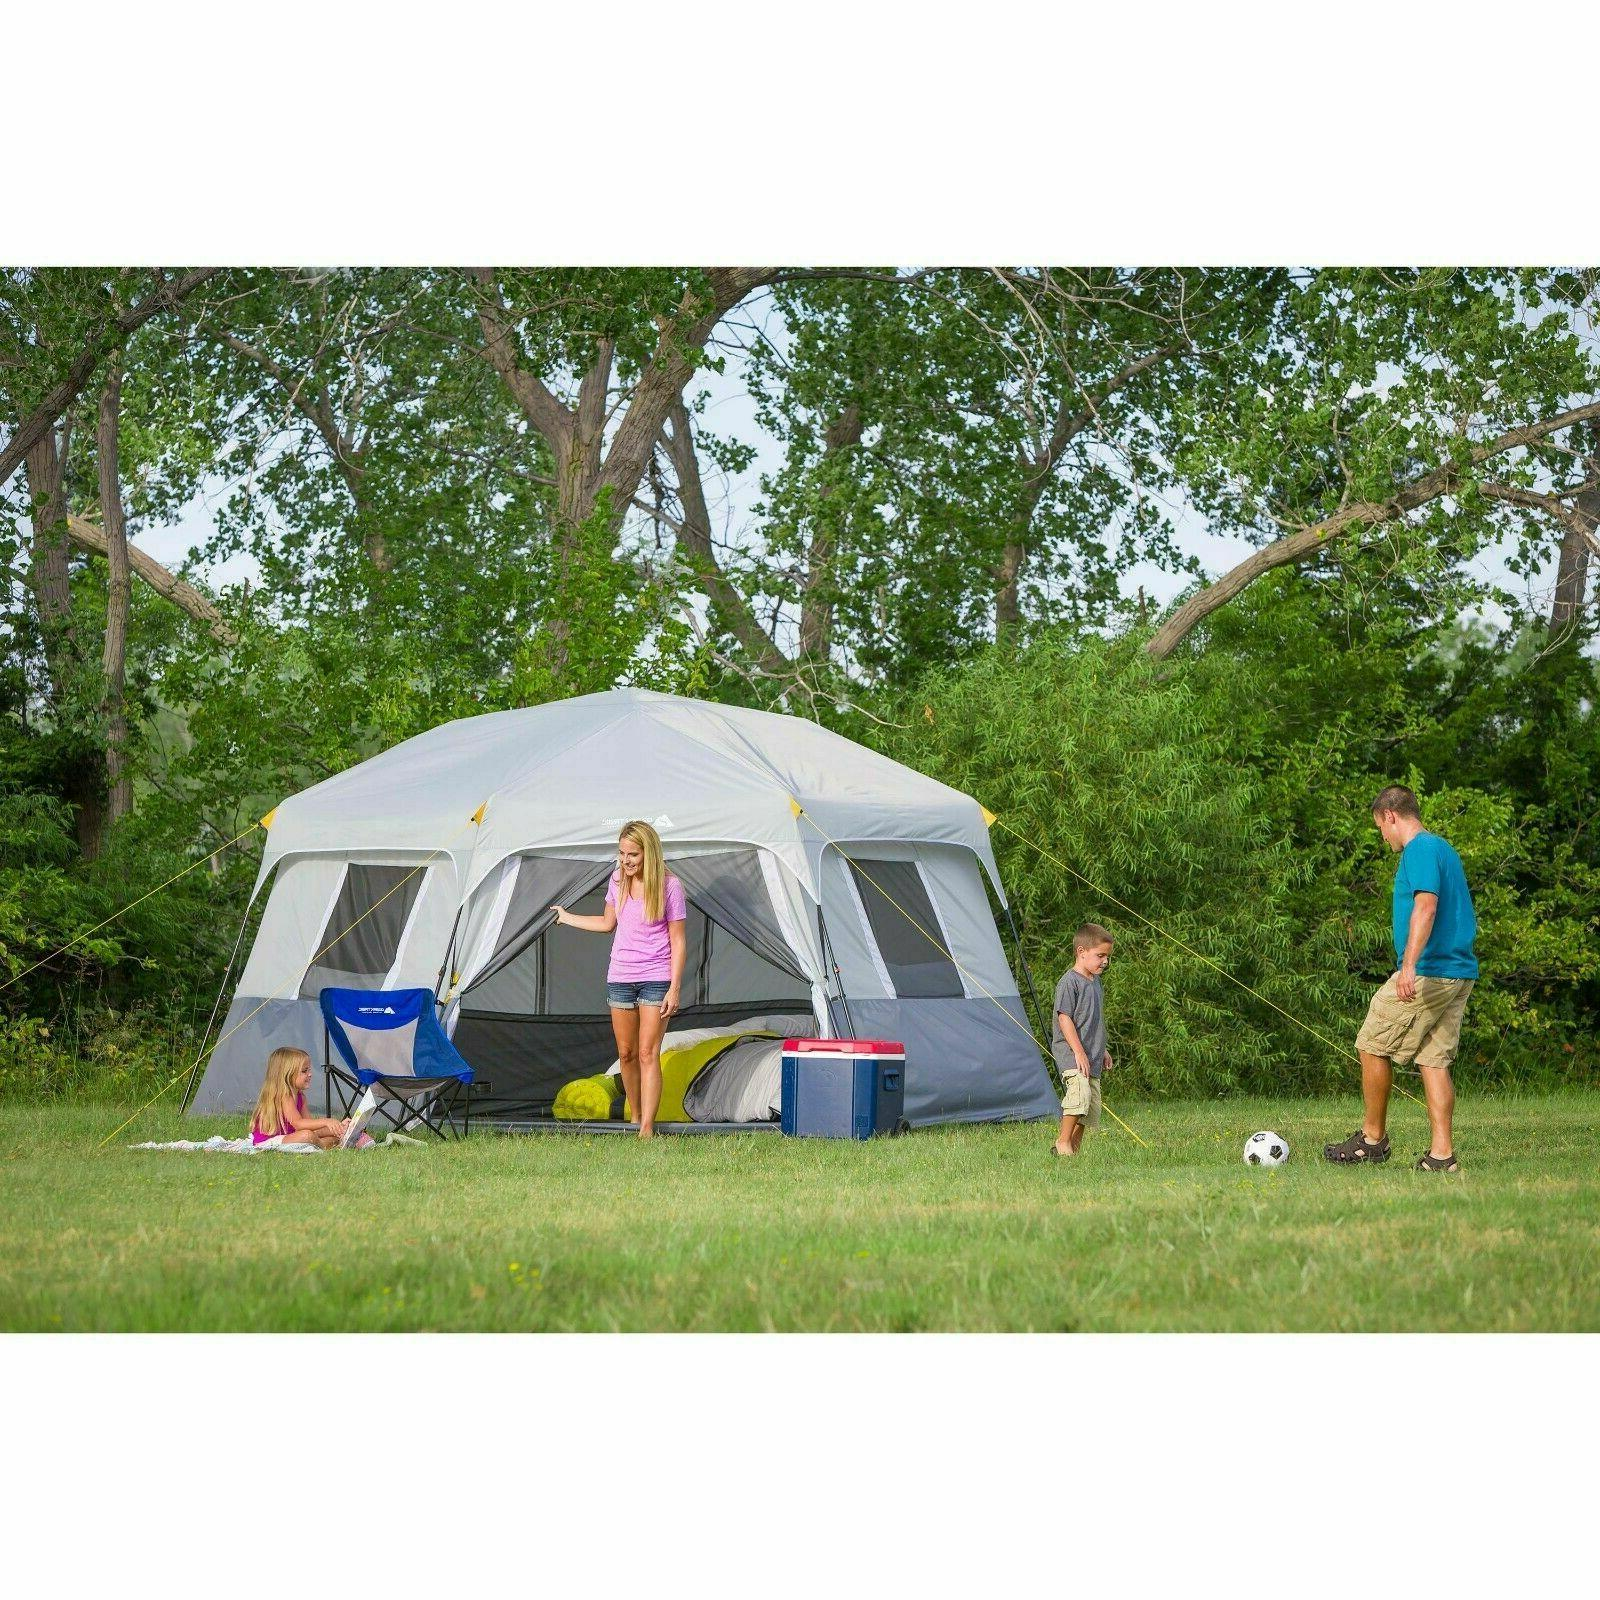 Instant Cabin Set Up 8 Outdoor Camping Shelter